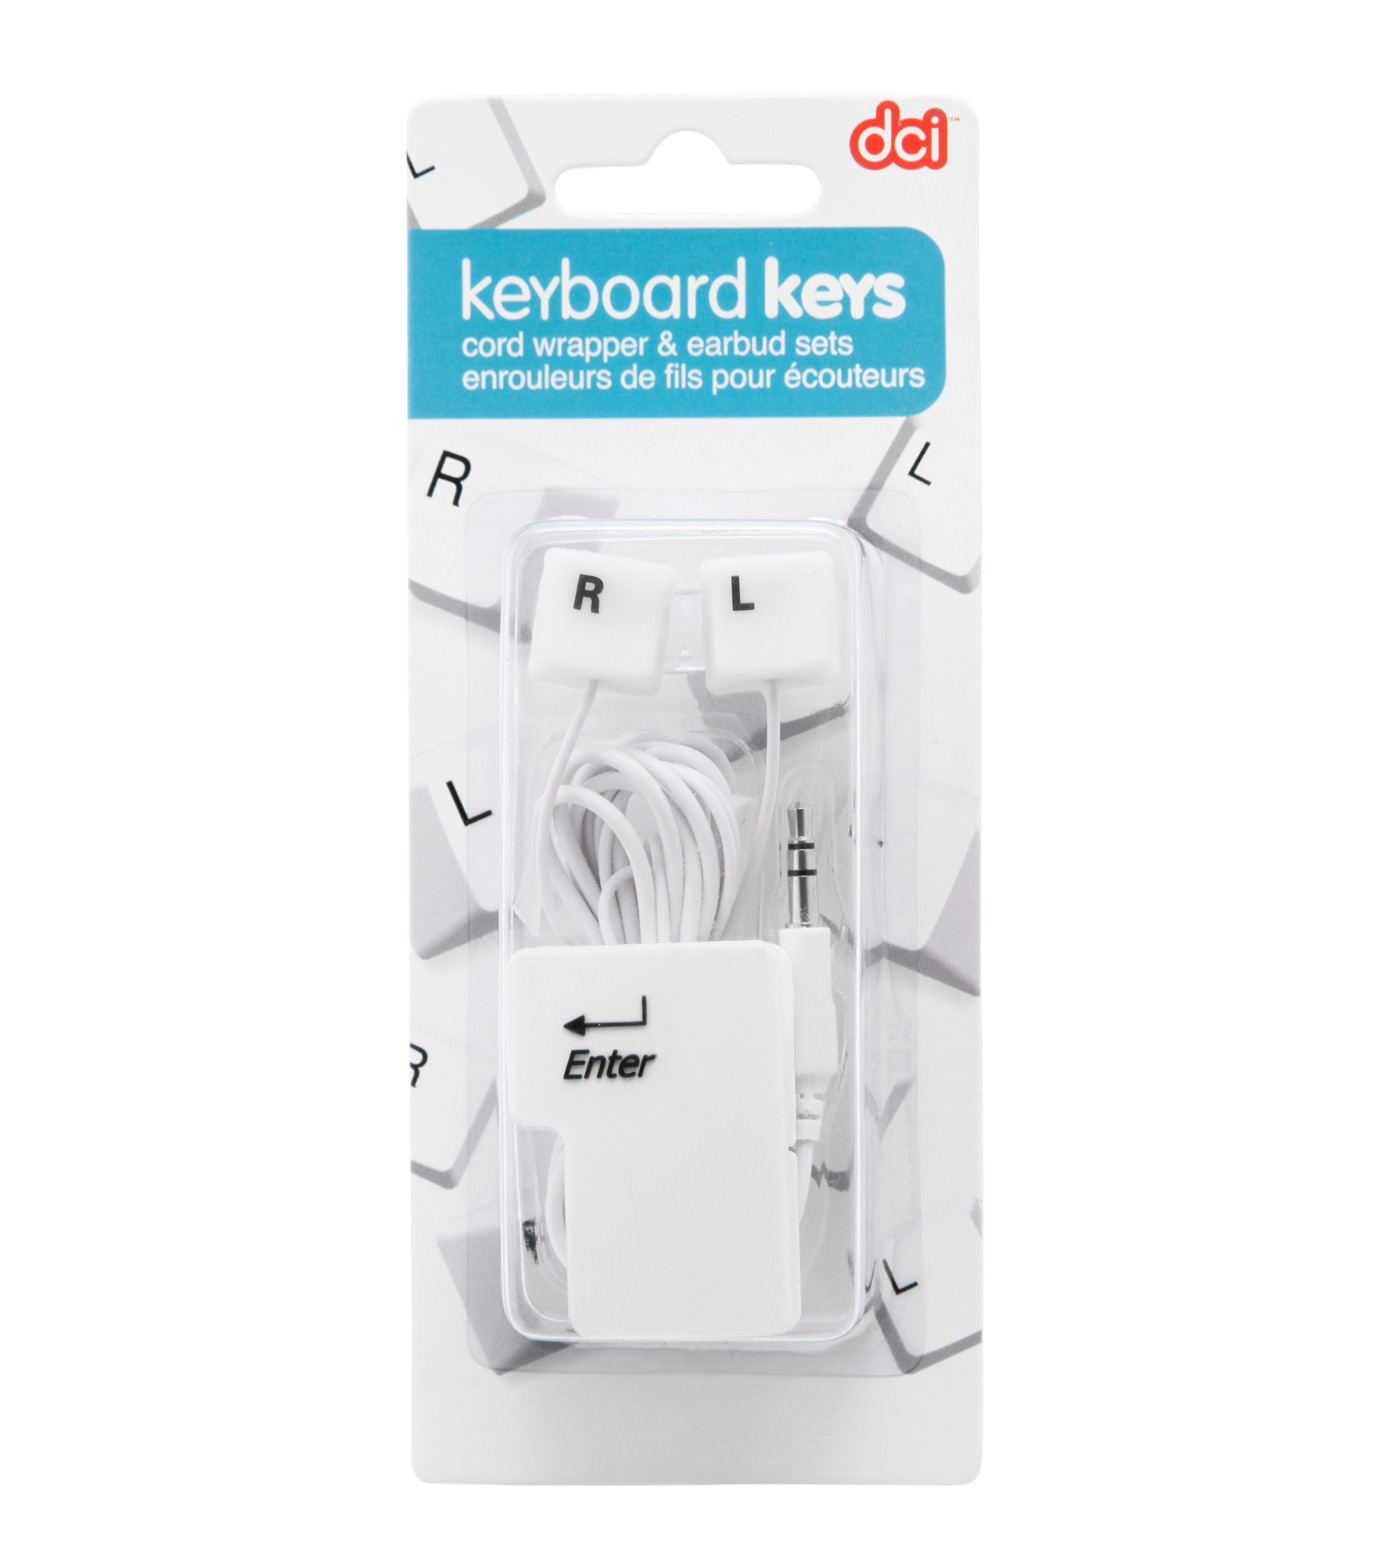 DCI(ディーシーアイ)のEarbud & cord wrp set: keybrd-WHITE(EARPHONE/EARPHONE)-30277-4 拡大詳細画像2